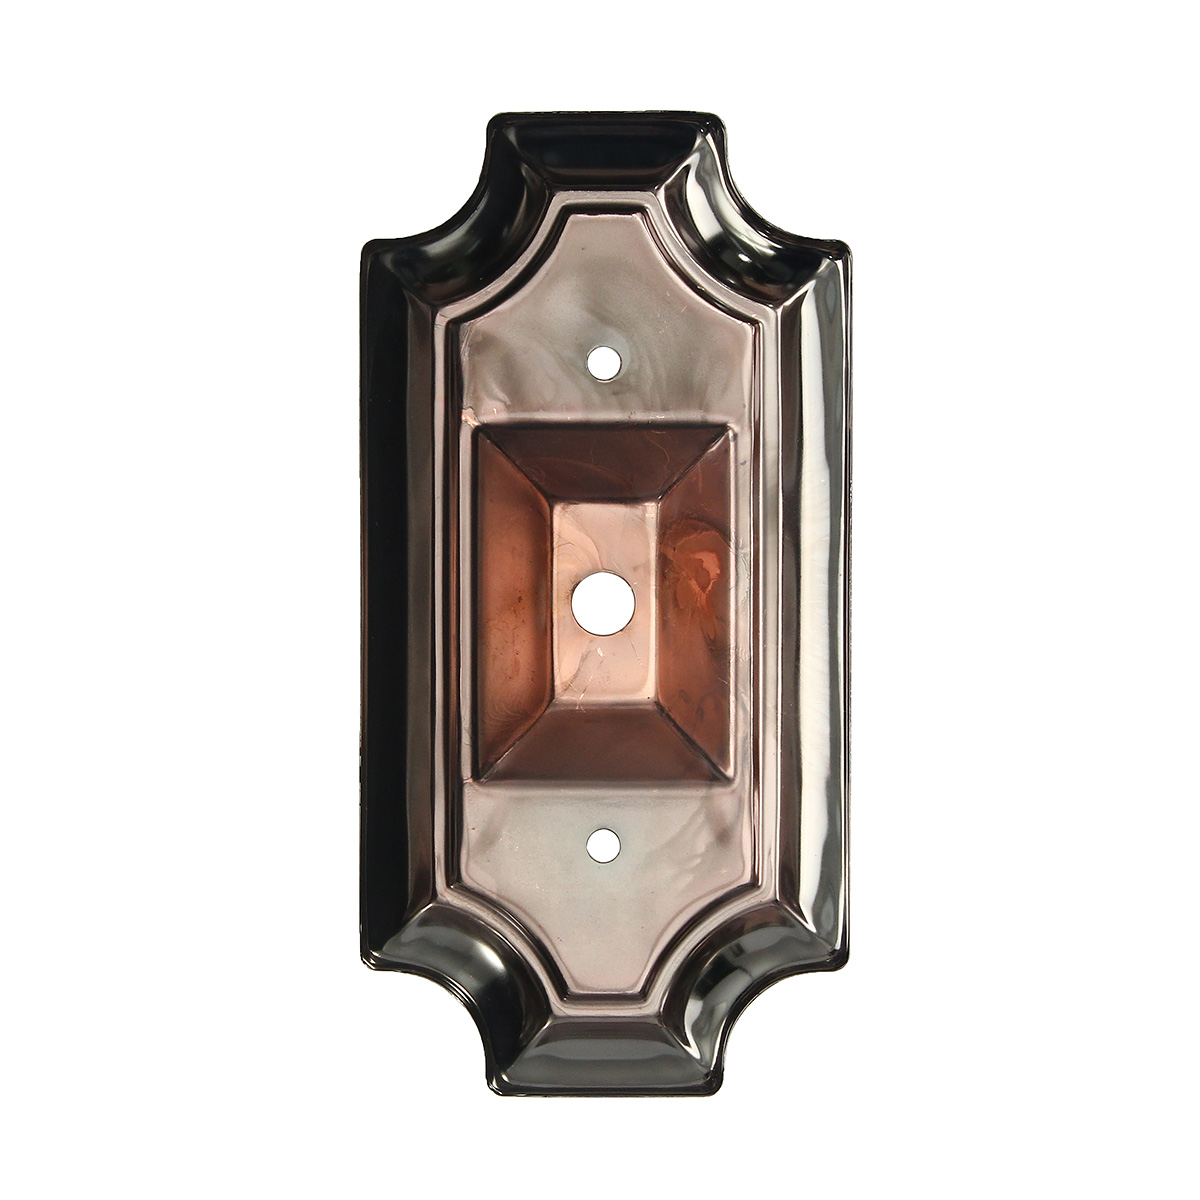 Wall Light Spare Parts : Retro Vintage Rectangle Style Sconce Wall Lamp Light Base Part Replacement Mount Fixture Alex NLD